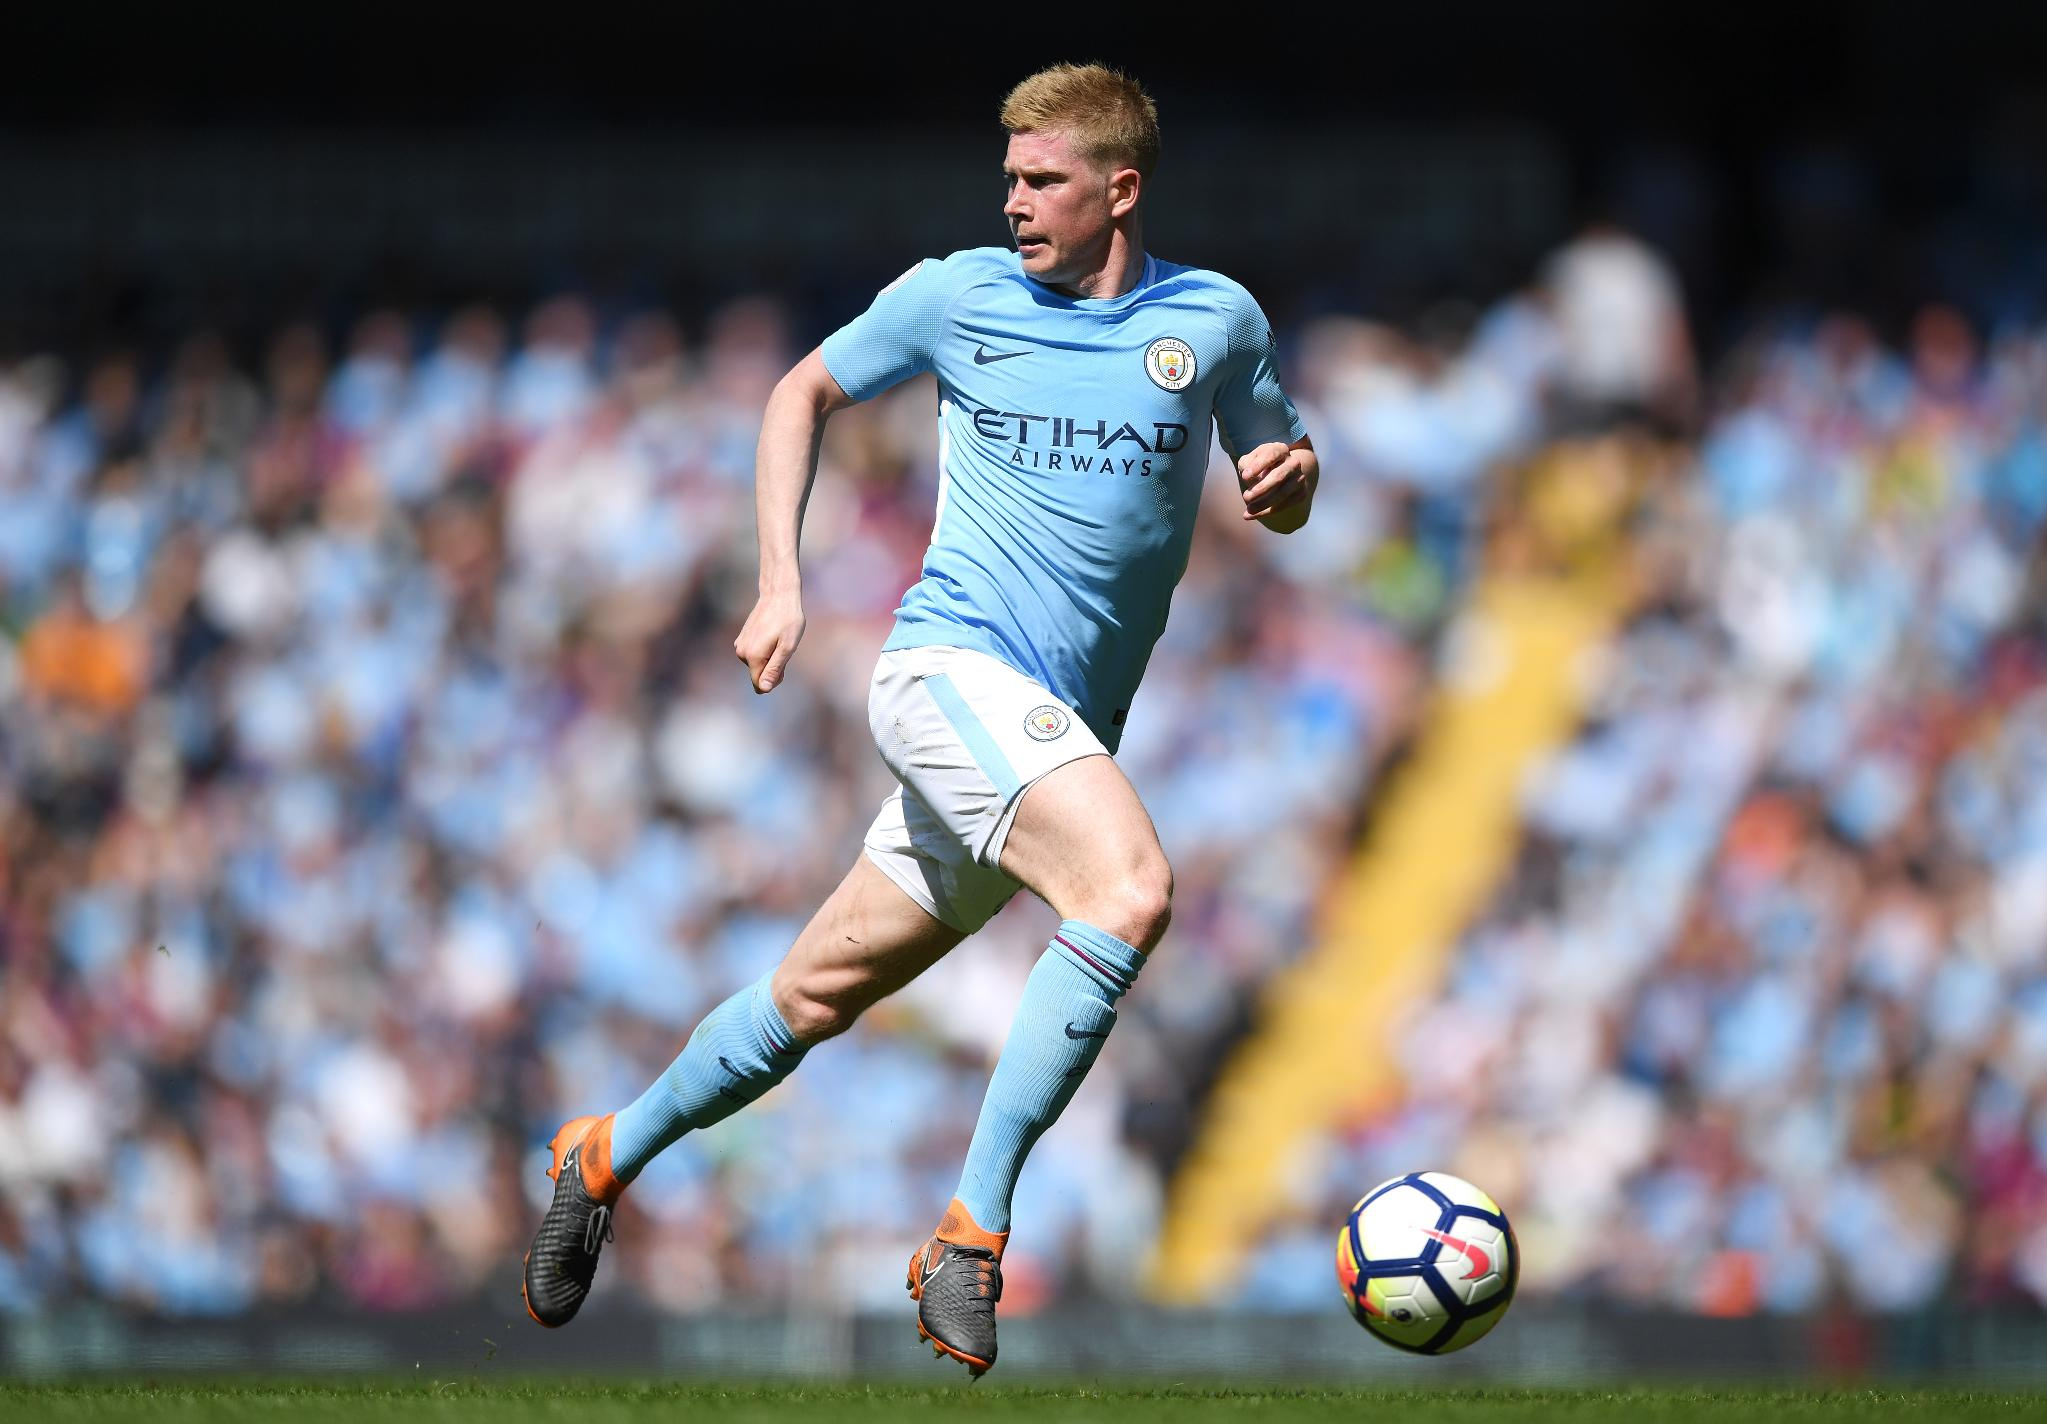 Man City's magnificent maestro ��  The stats behind Kevin De Bruyne's amazing campaign: https://t.co/icxnxxMIcd https://t.co/FhtI4SWanw